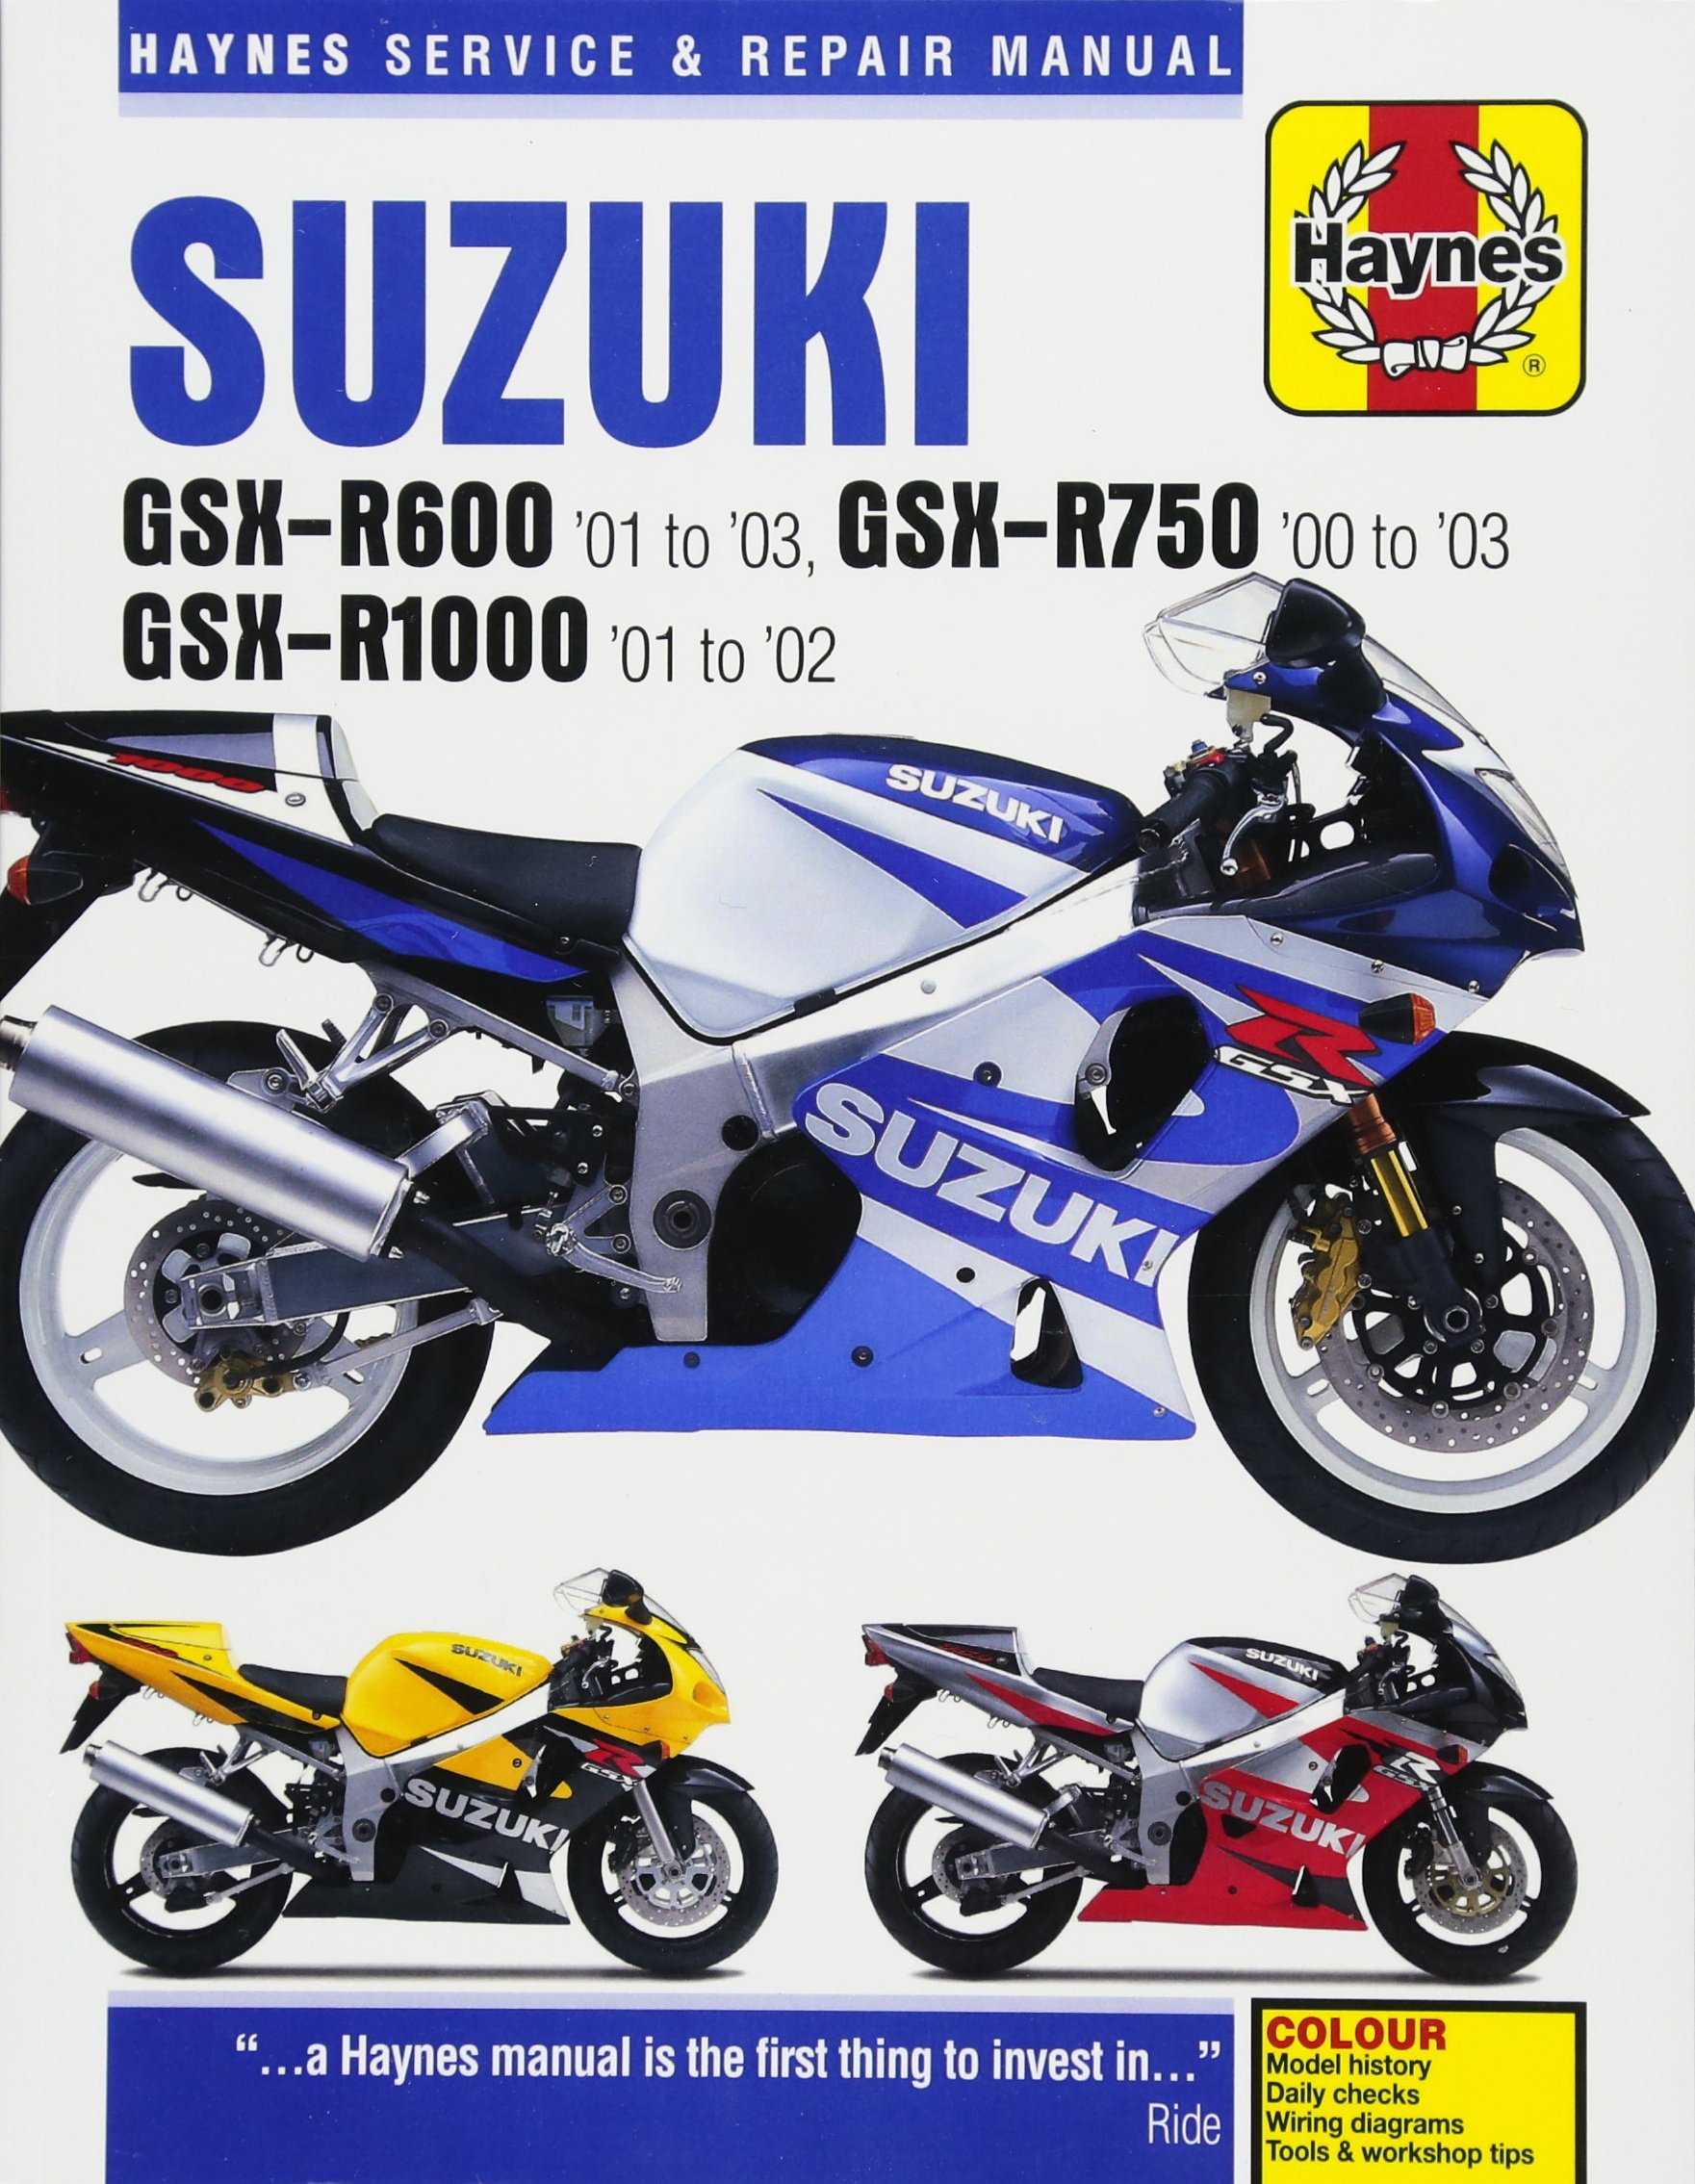 Suzuki GSX-R600 '01 to '03, GSX-R750 '00 to '03 & GSX-R1000 '01 to '02  (Haynes Service & Repair Manual): Editors of Haynes Manuals: 9781785212734:  ...